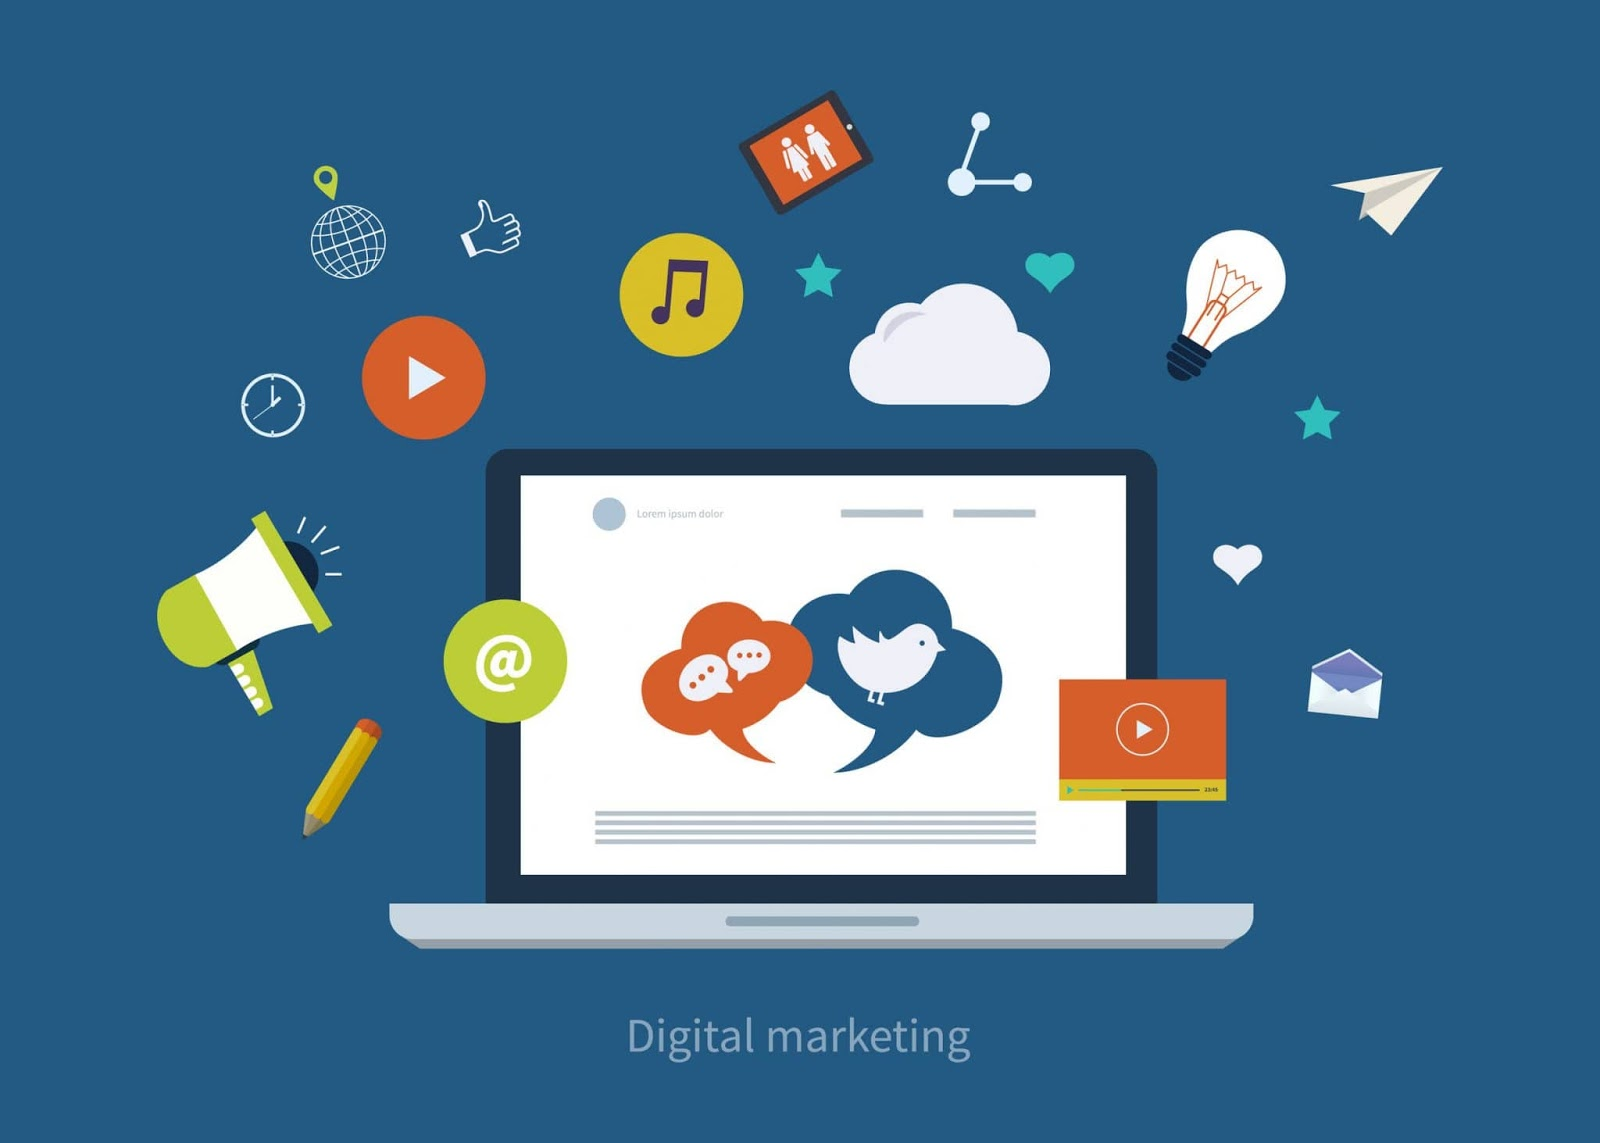 How can Amazon Web Services escalate Digital Marketing Business?